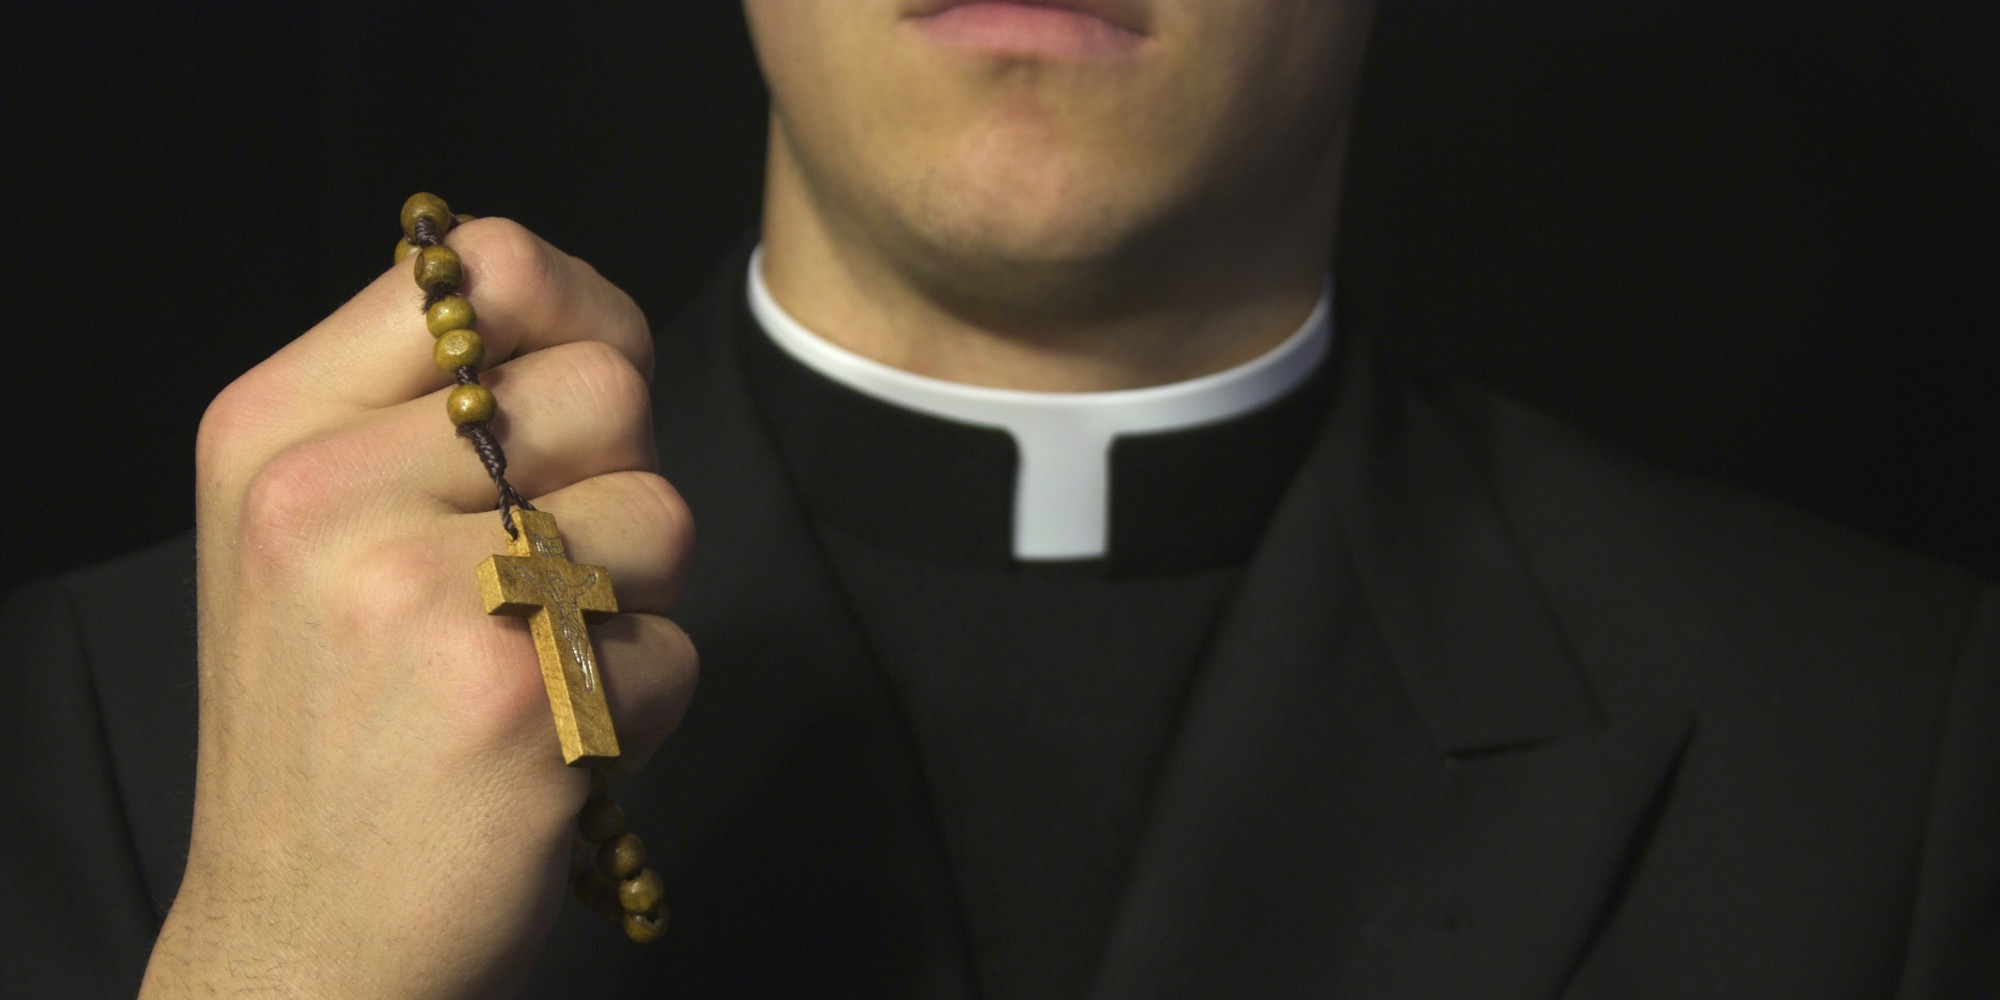 Gay marriage priest arrest